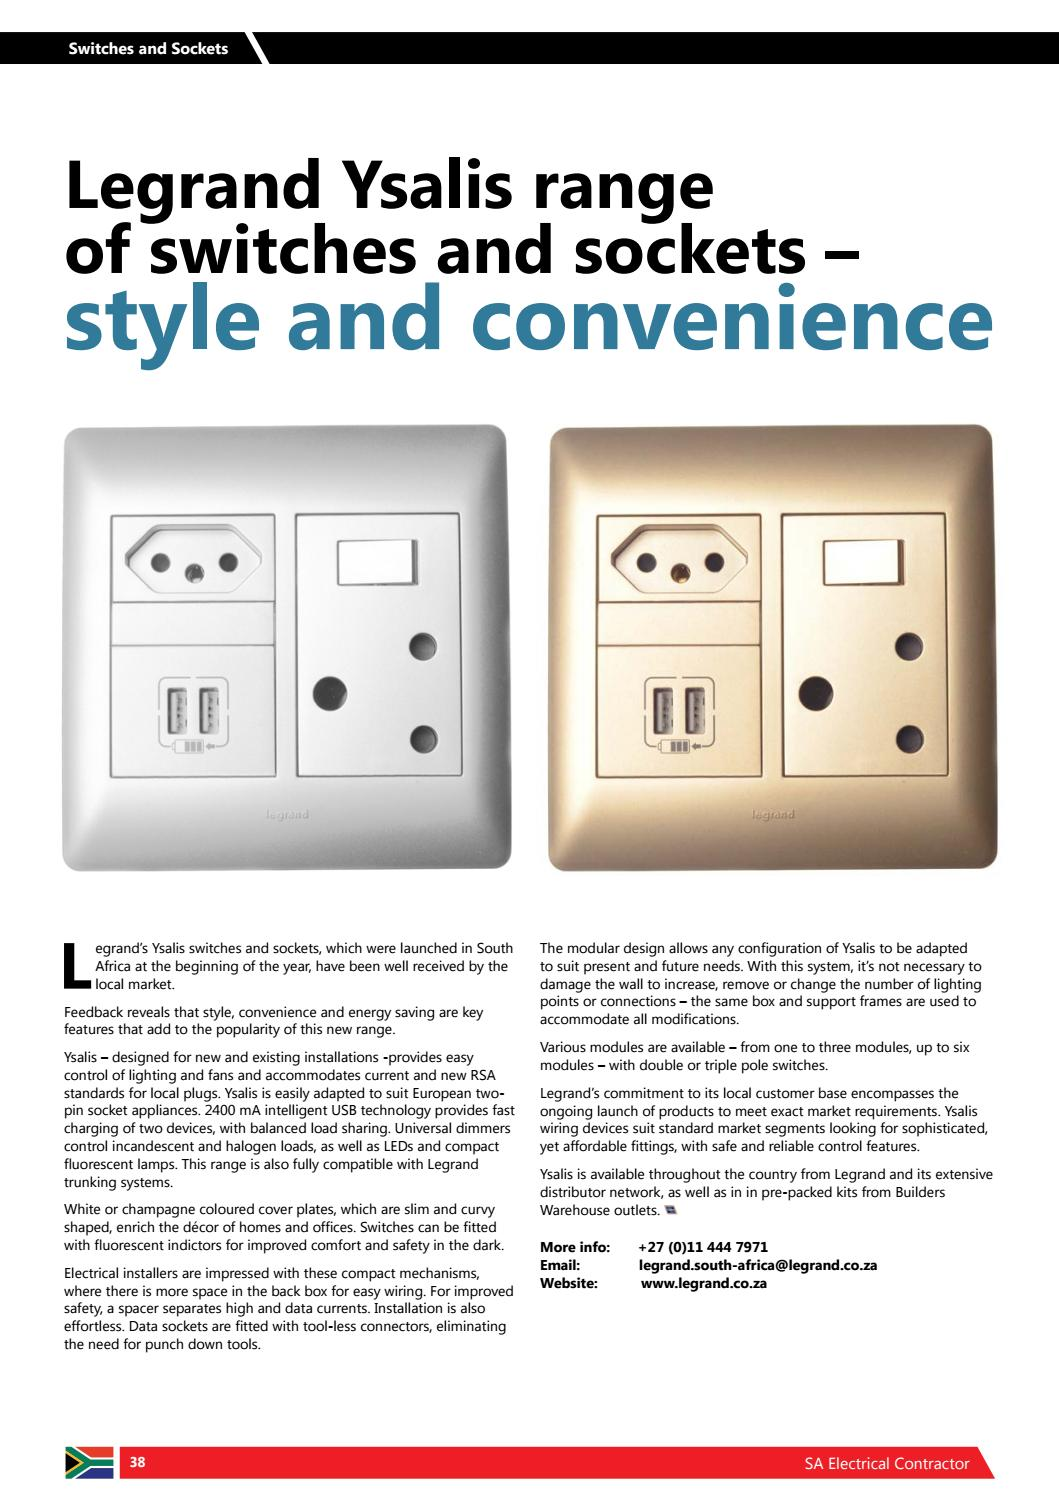 Ecasa 2017 Online By European Association Of Electrical Contractors Wiring Wall Socket South Africa Issuu